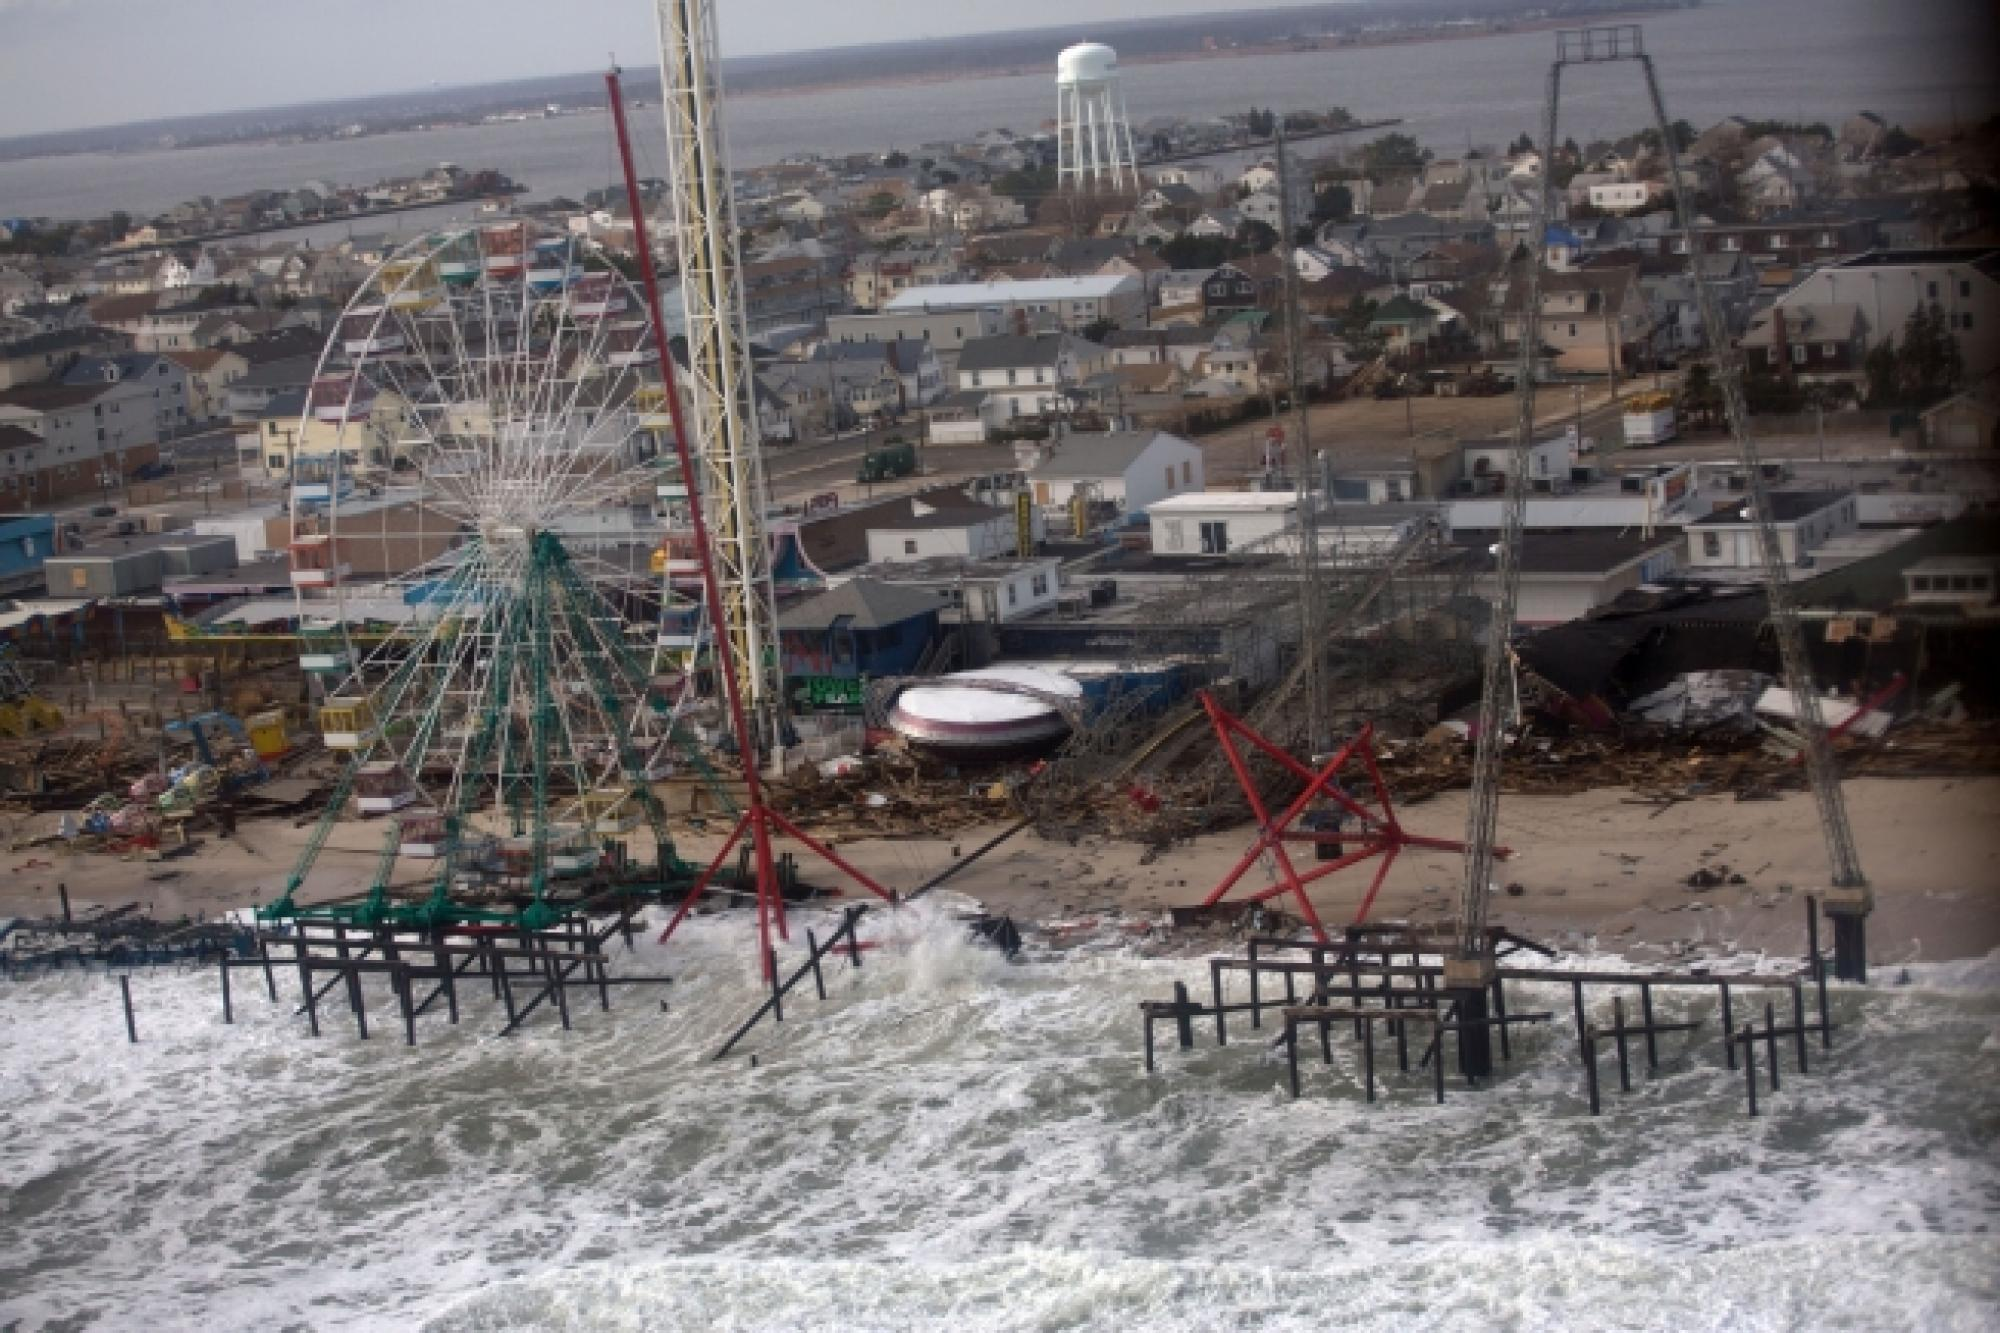 The view from an aerial tour of Hurricane Sandy's damage of New Jersey's barrier beaches taken Nov. 18, 2012, during Vice President Joe Biden's visit to survey the storm damage.